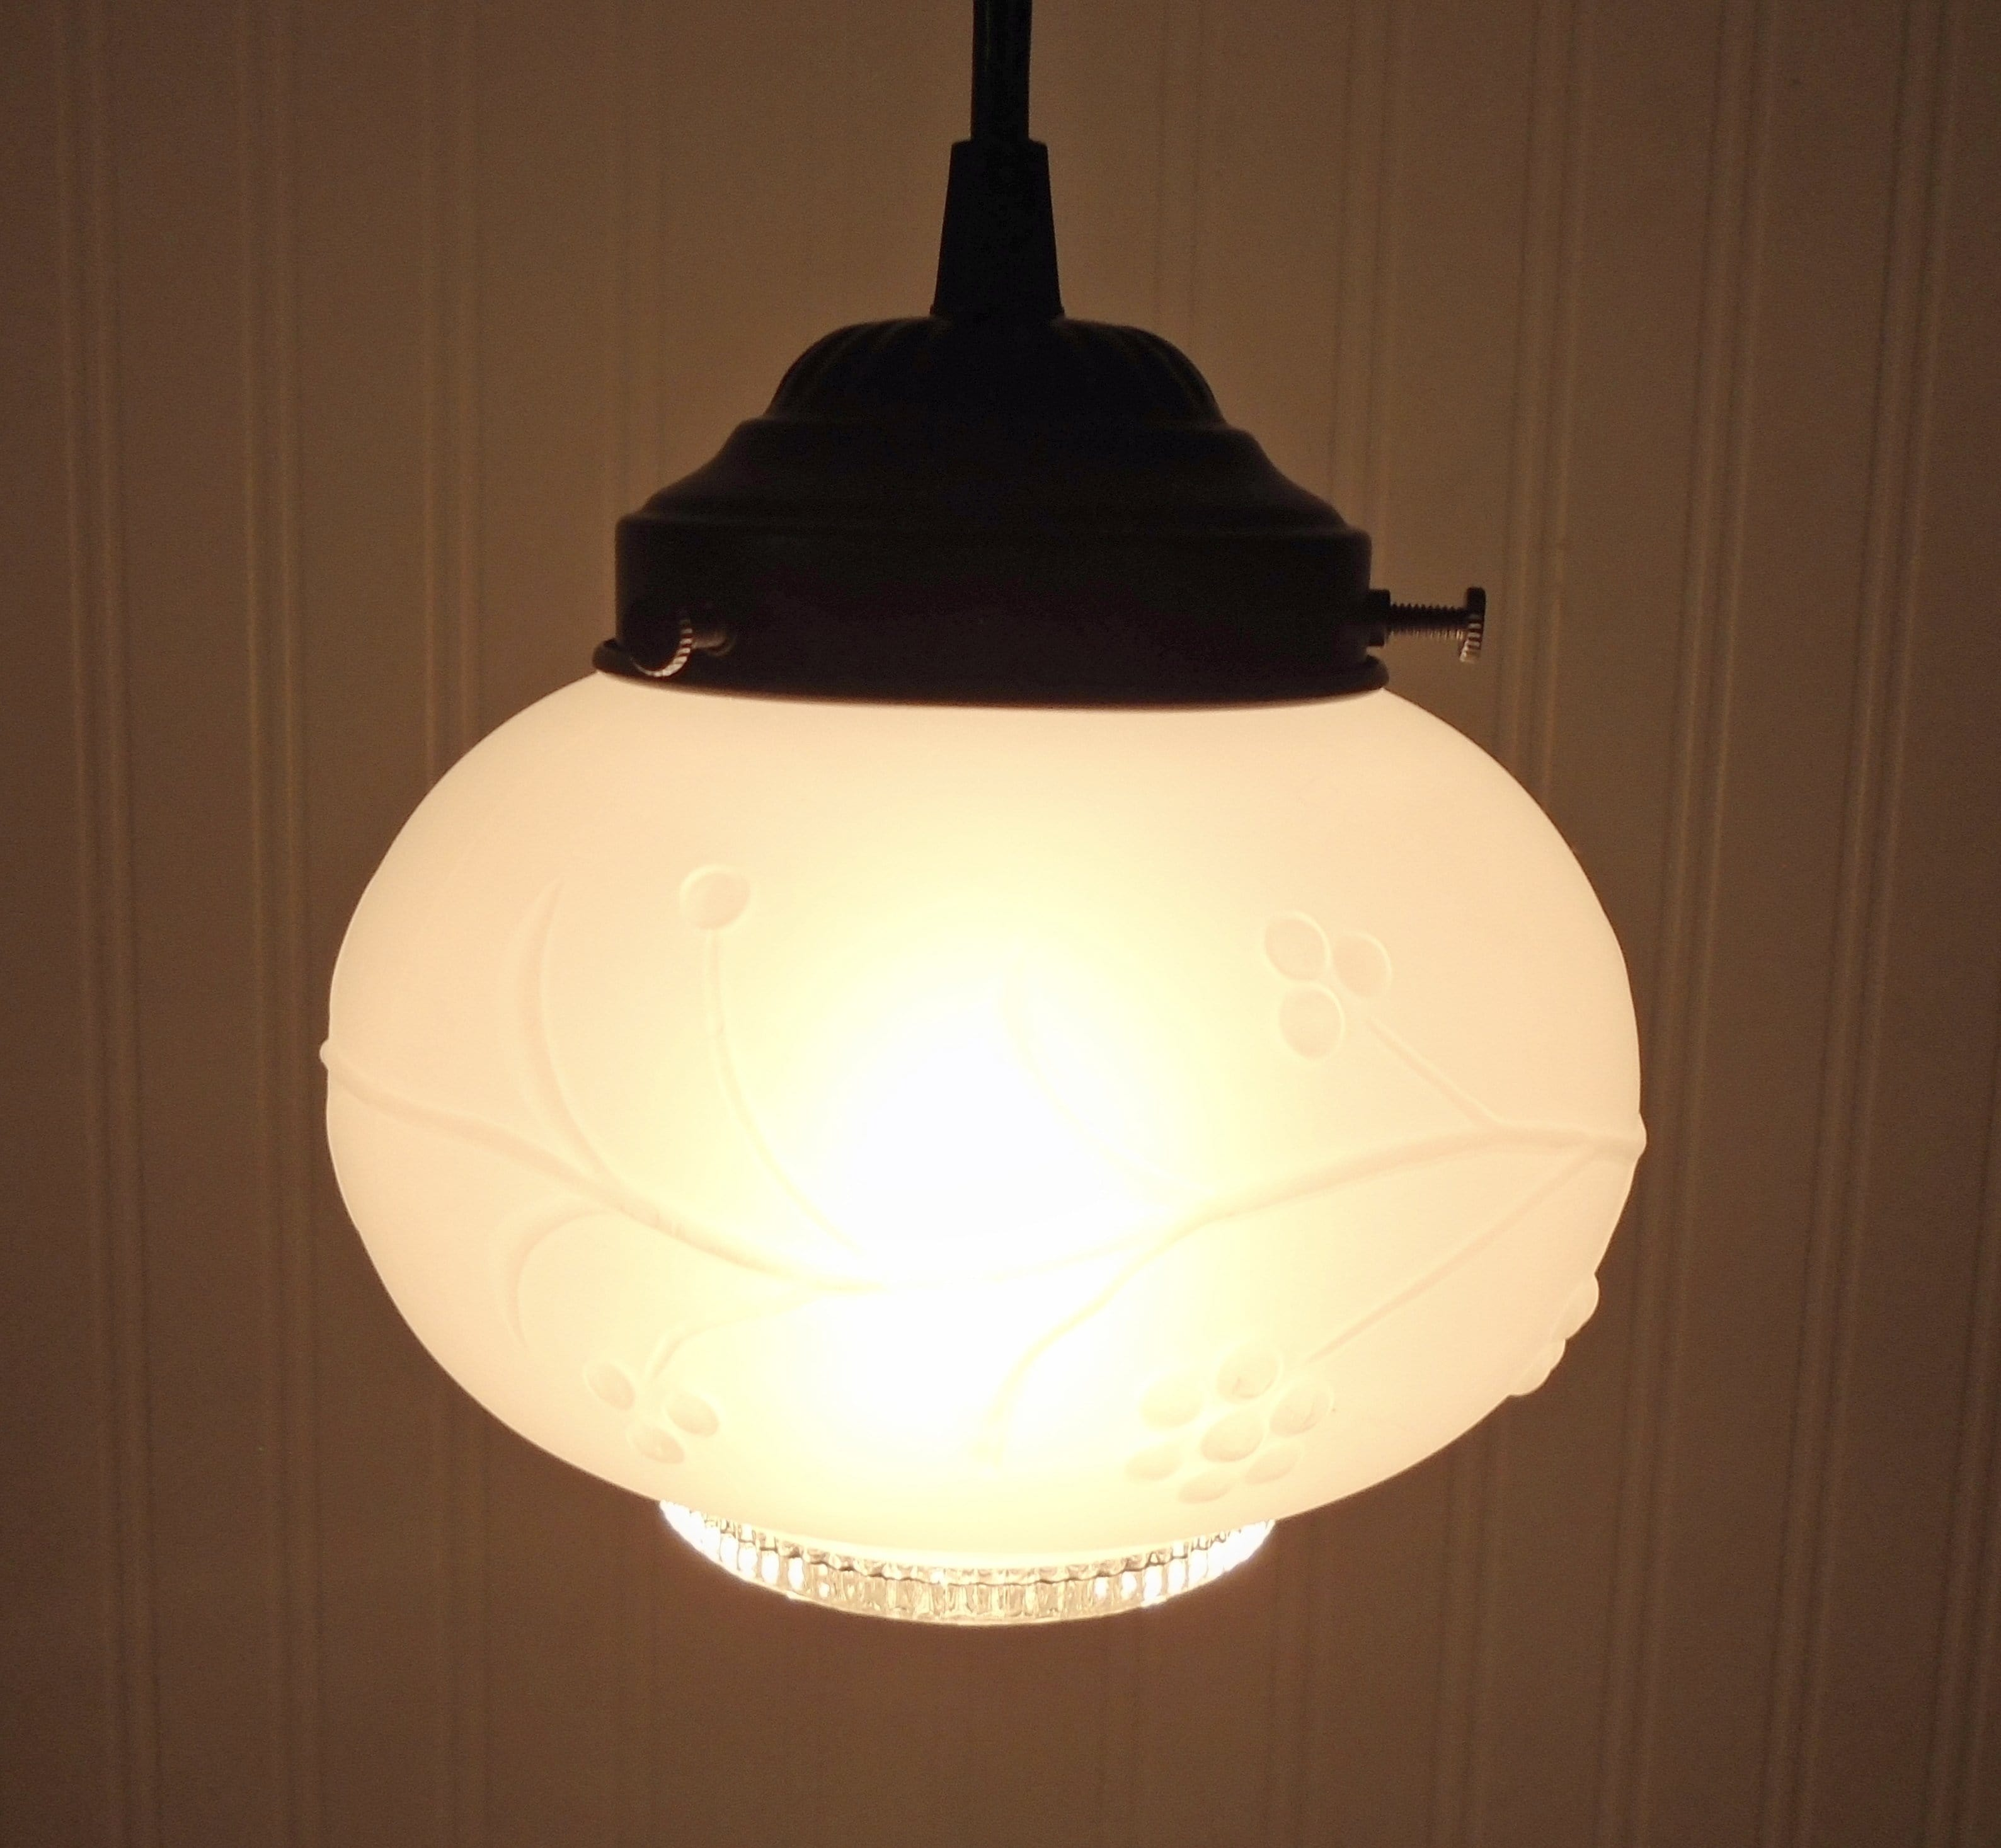 exclusive glass products ceilings cut clear ceiling the goods an shade pendant mason lamp vintage diamond light of copy jar